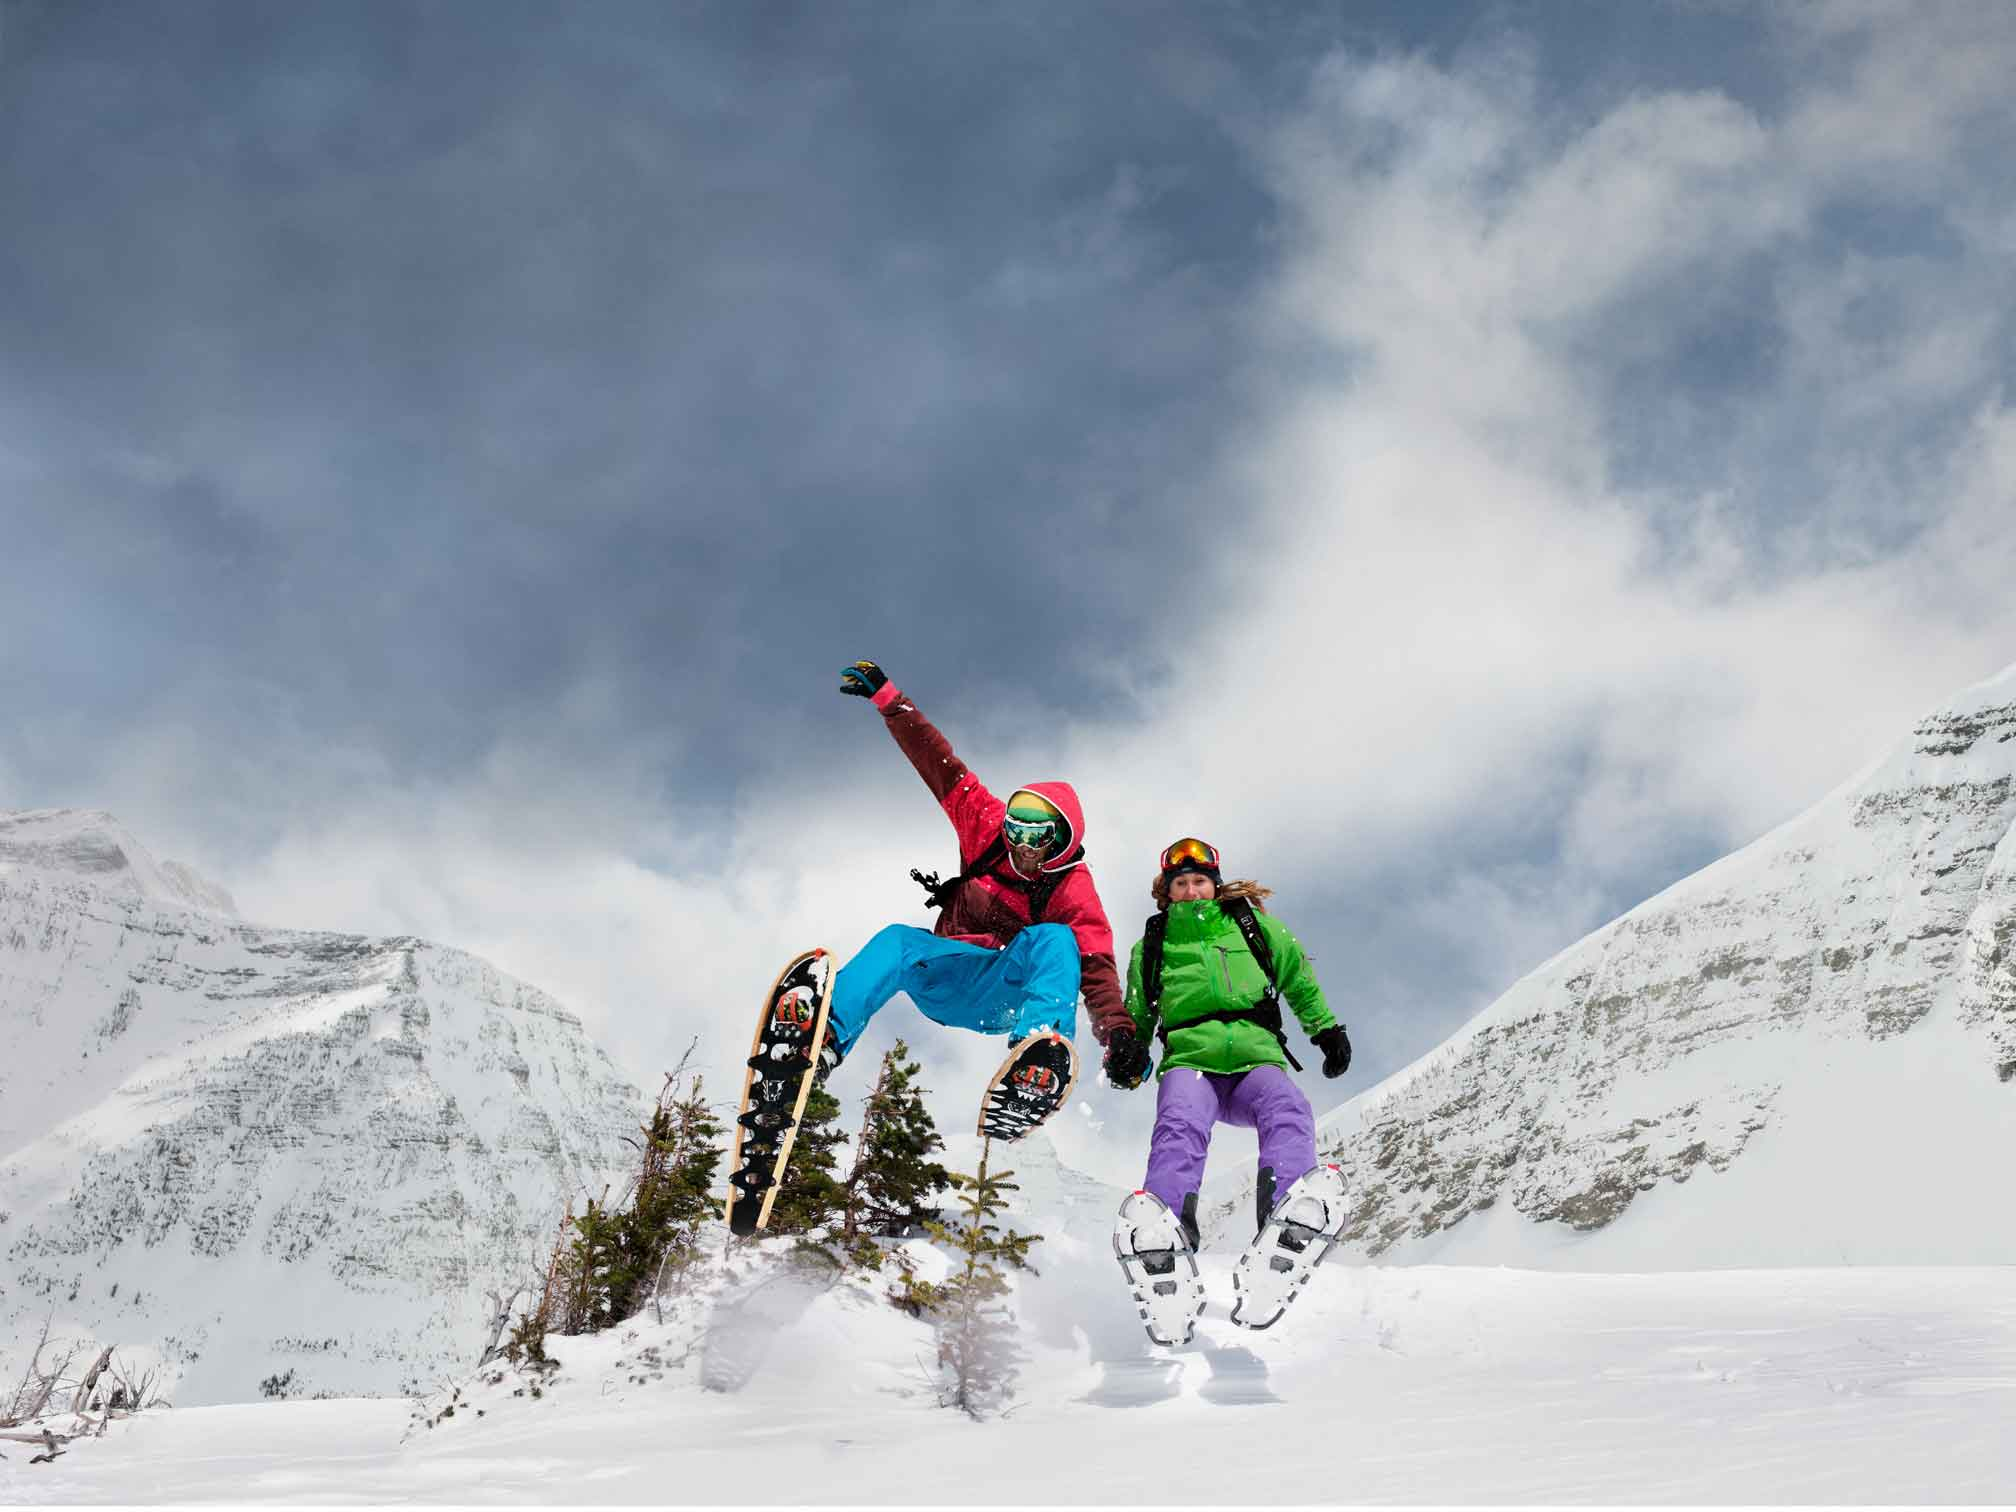 Snowshoeing in the Canadian Rockies is a great way to get outside and Play in the snow! Photo by Anthony Redpath